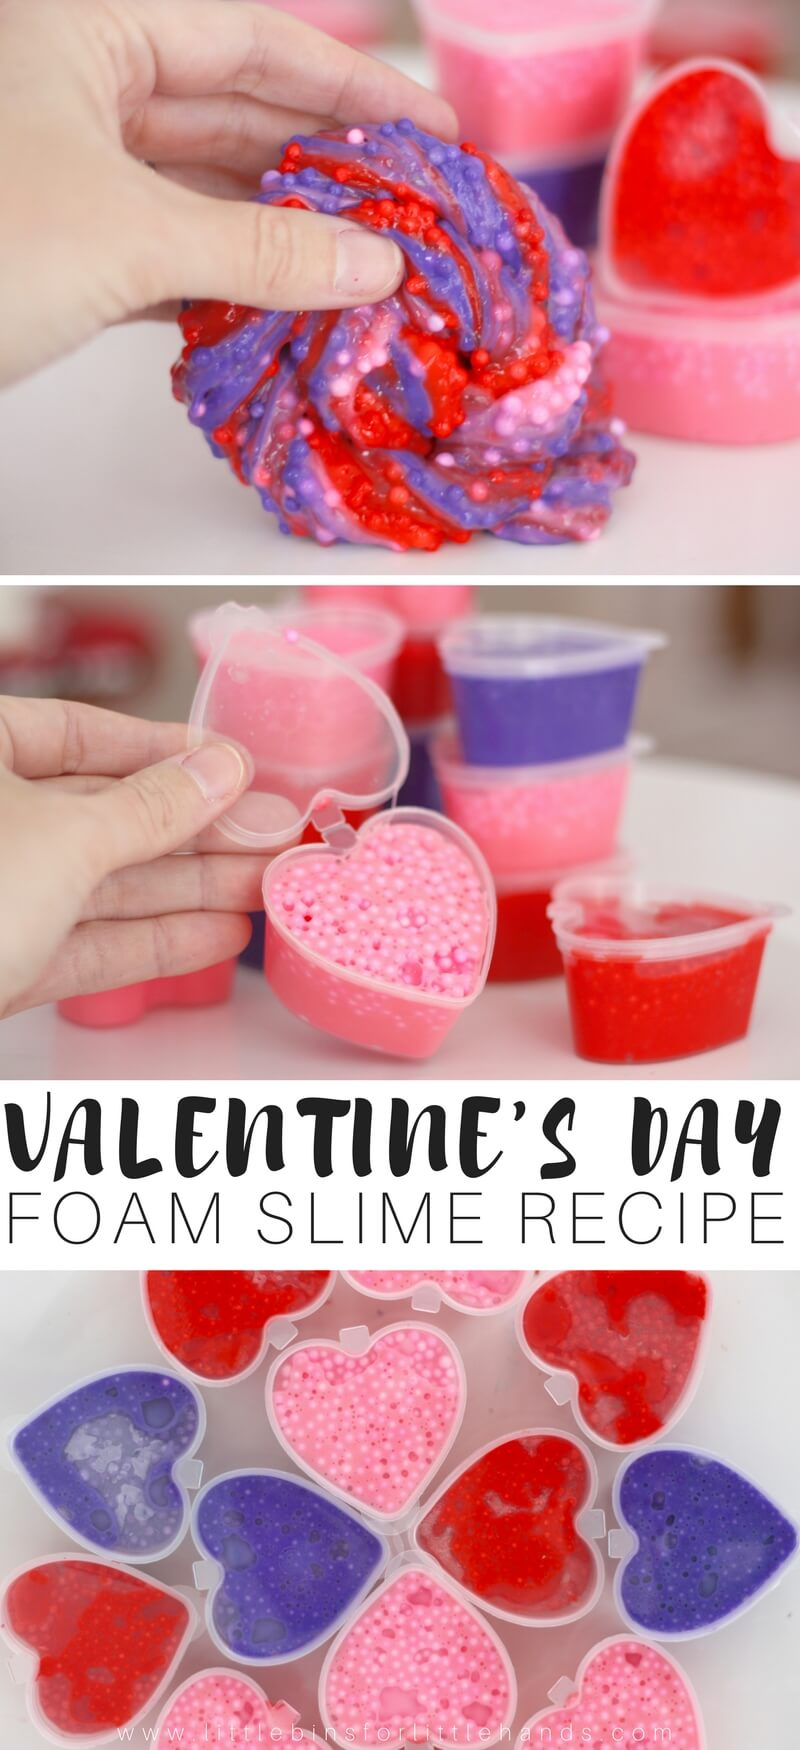 learn how to make valentines day floam slime with the kids this season make candy